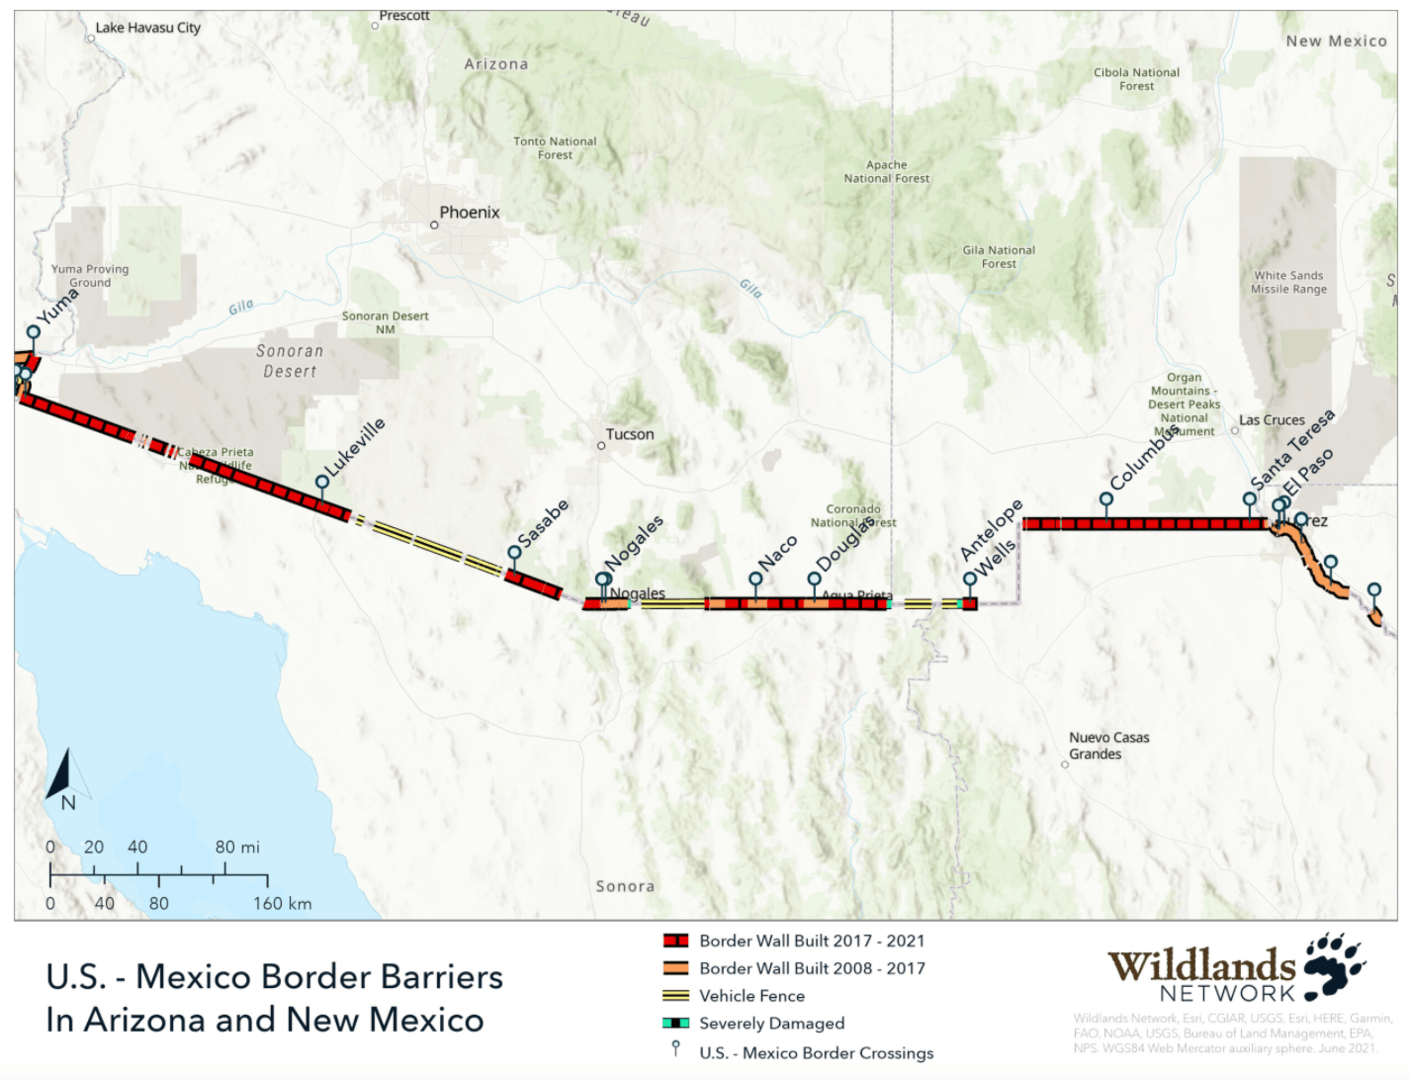 Border Wall in Arizona and New Mexico Map (Wildlands Network)